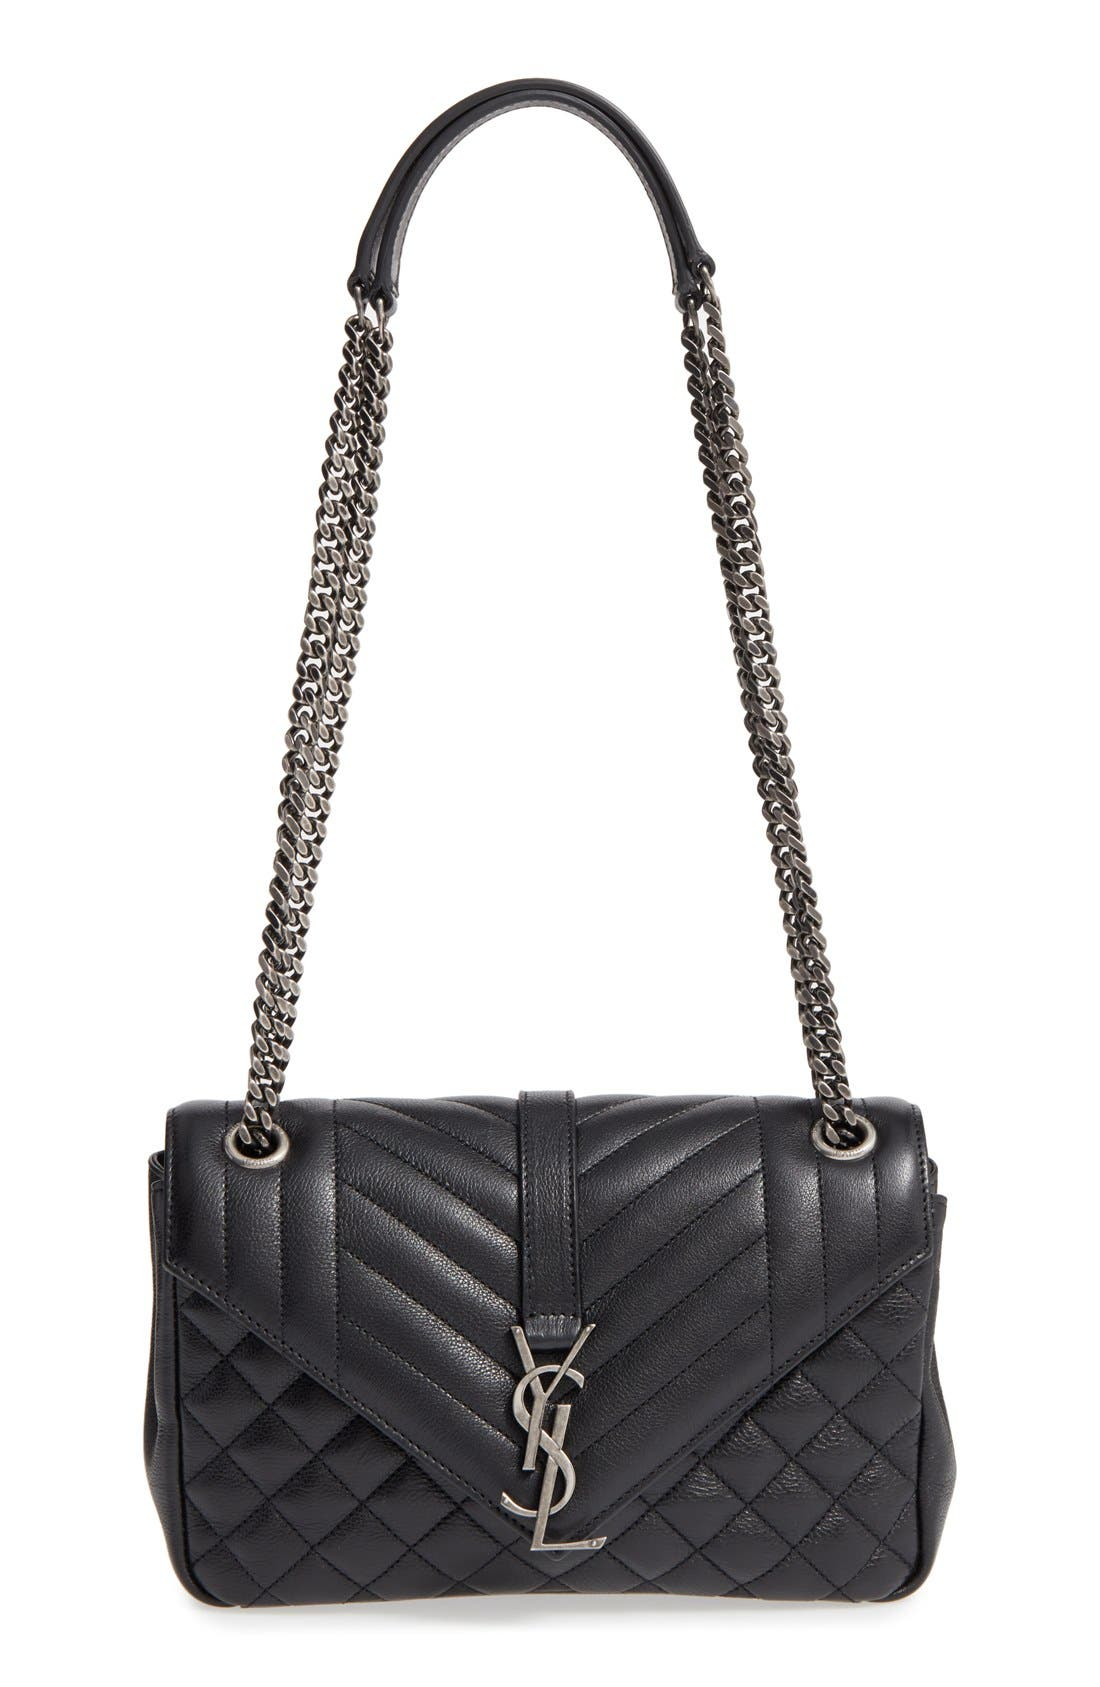 Saint Laurent Medium Monogram Quilted Calfskin Shoulder Bag